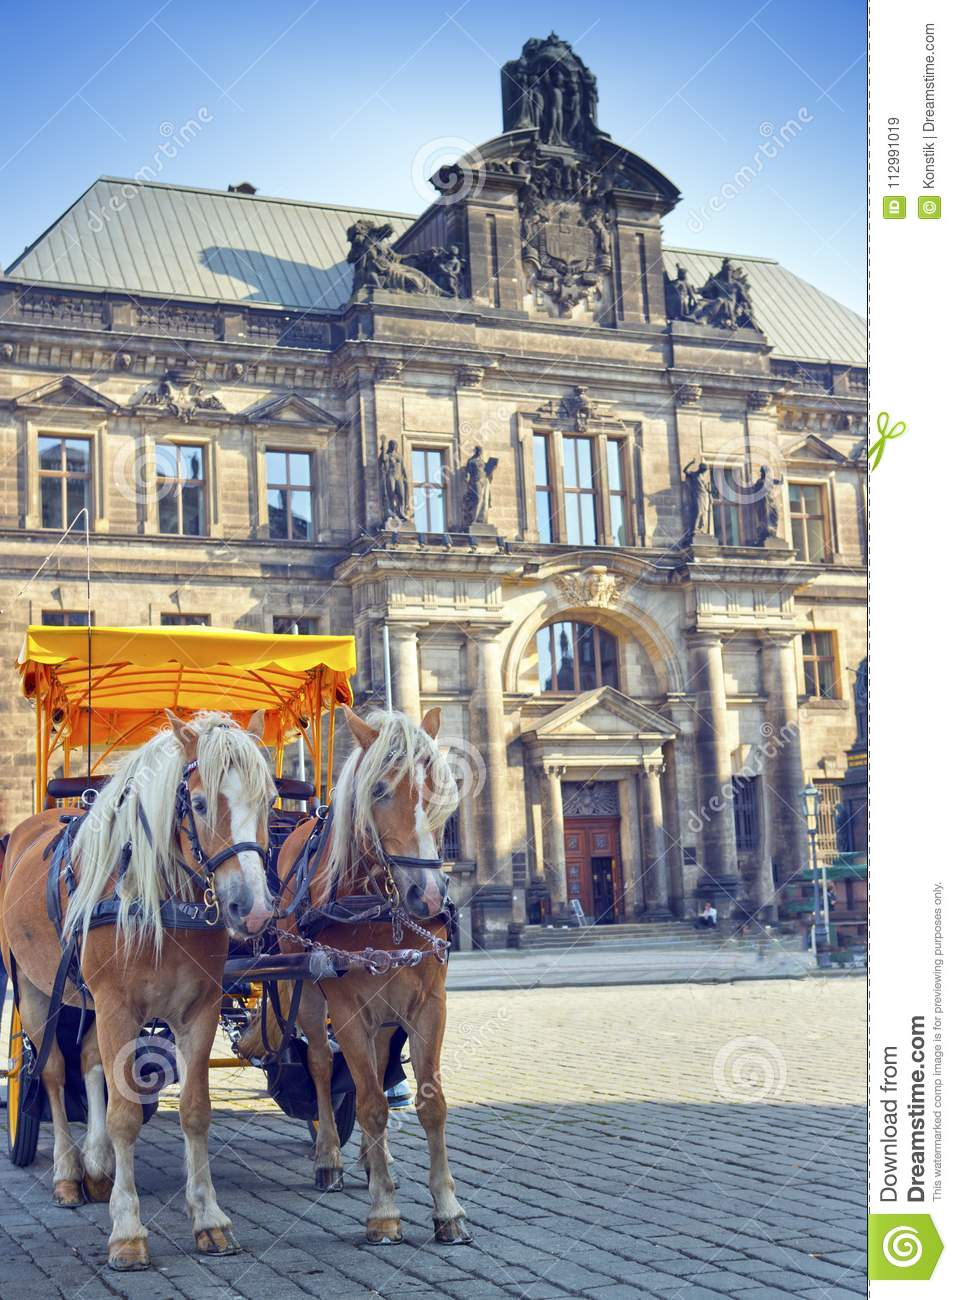 Dresden. The horse vehicle for tourist walks in the old city